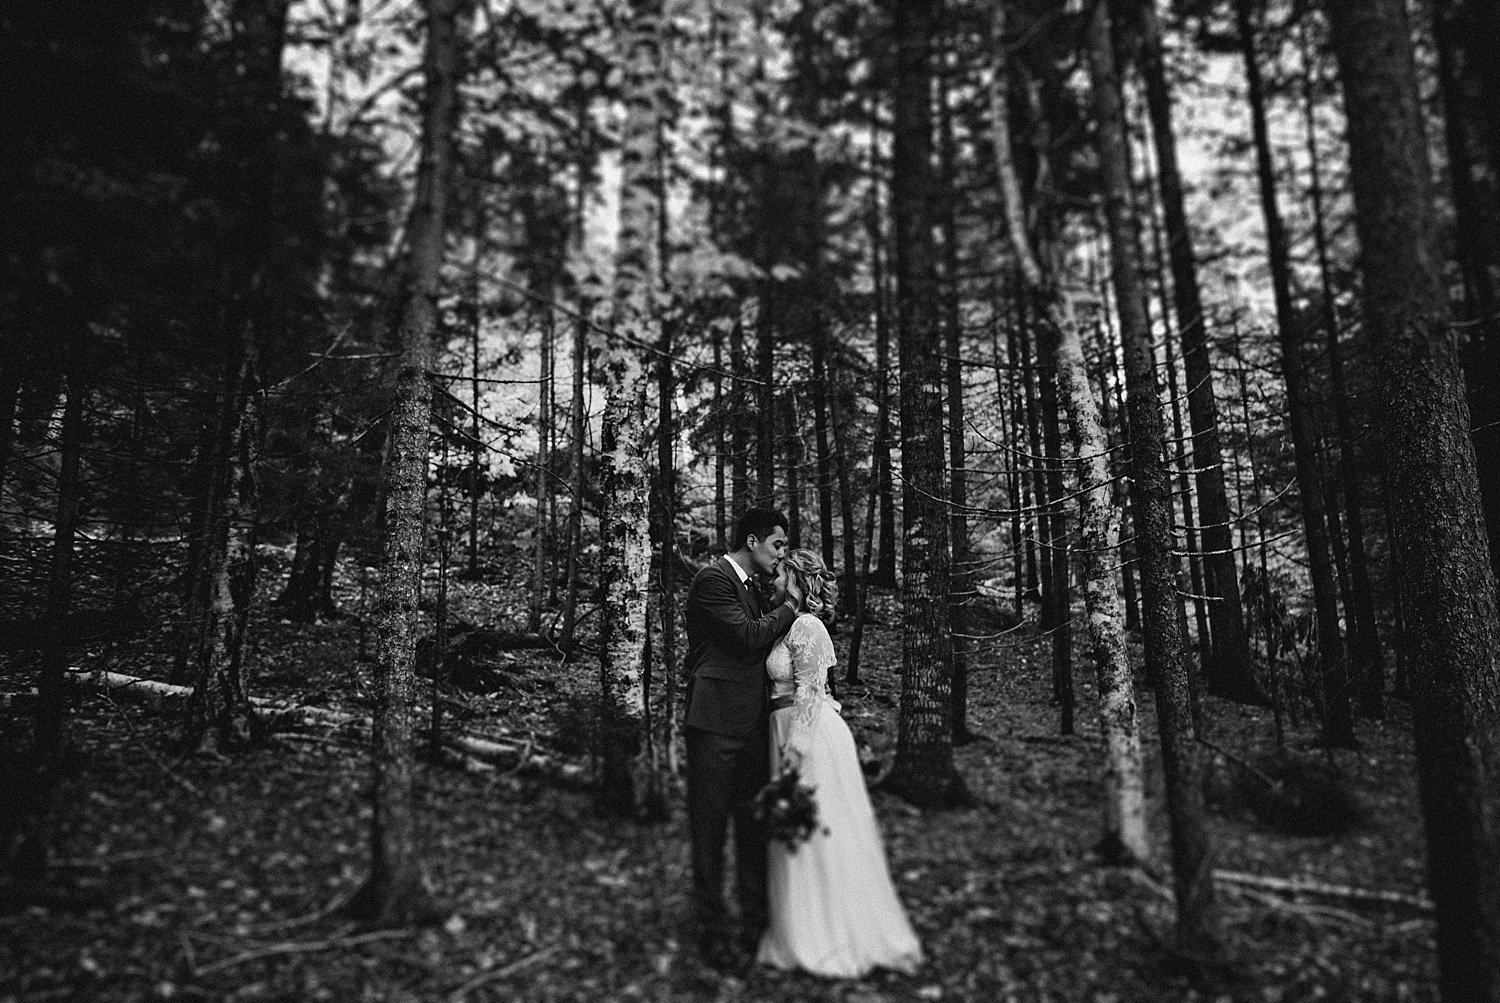 groom kissing bride in the forest